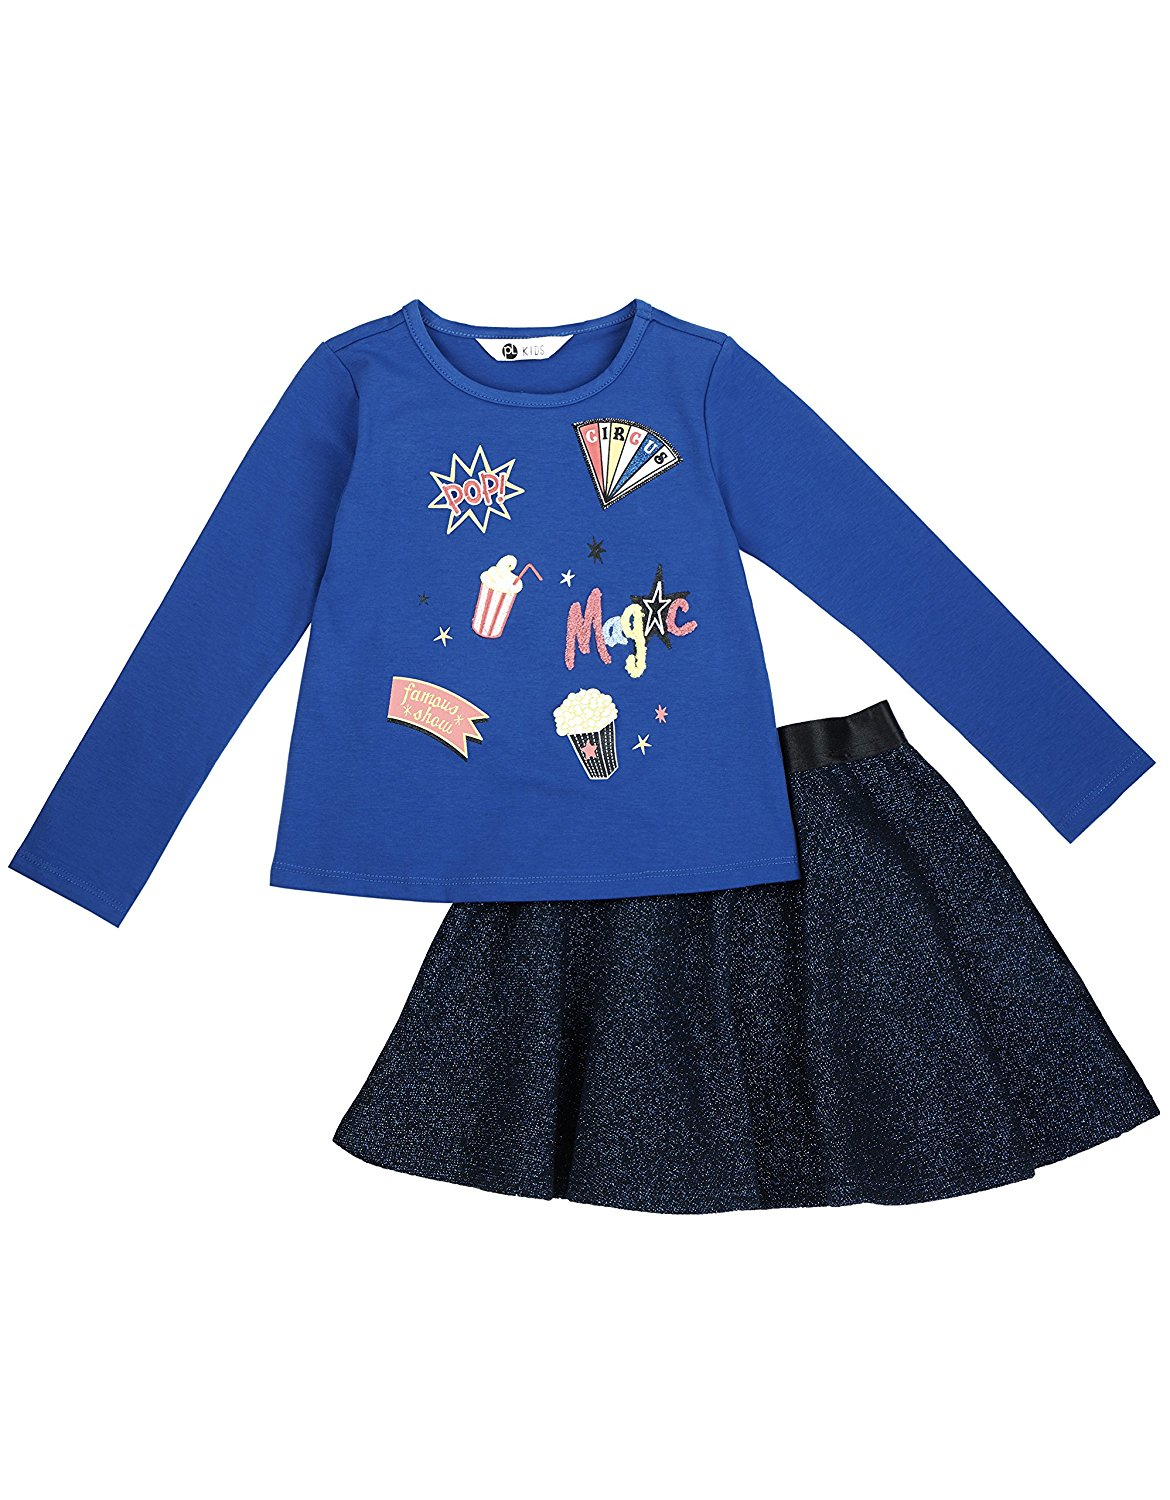 Comfy and Cute. Fun Cute Top and Skirt Set Little Girl Outfit